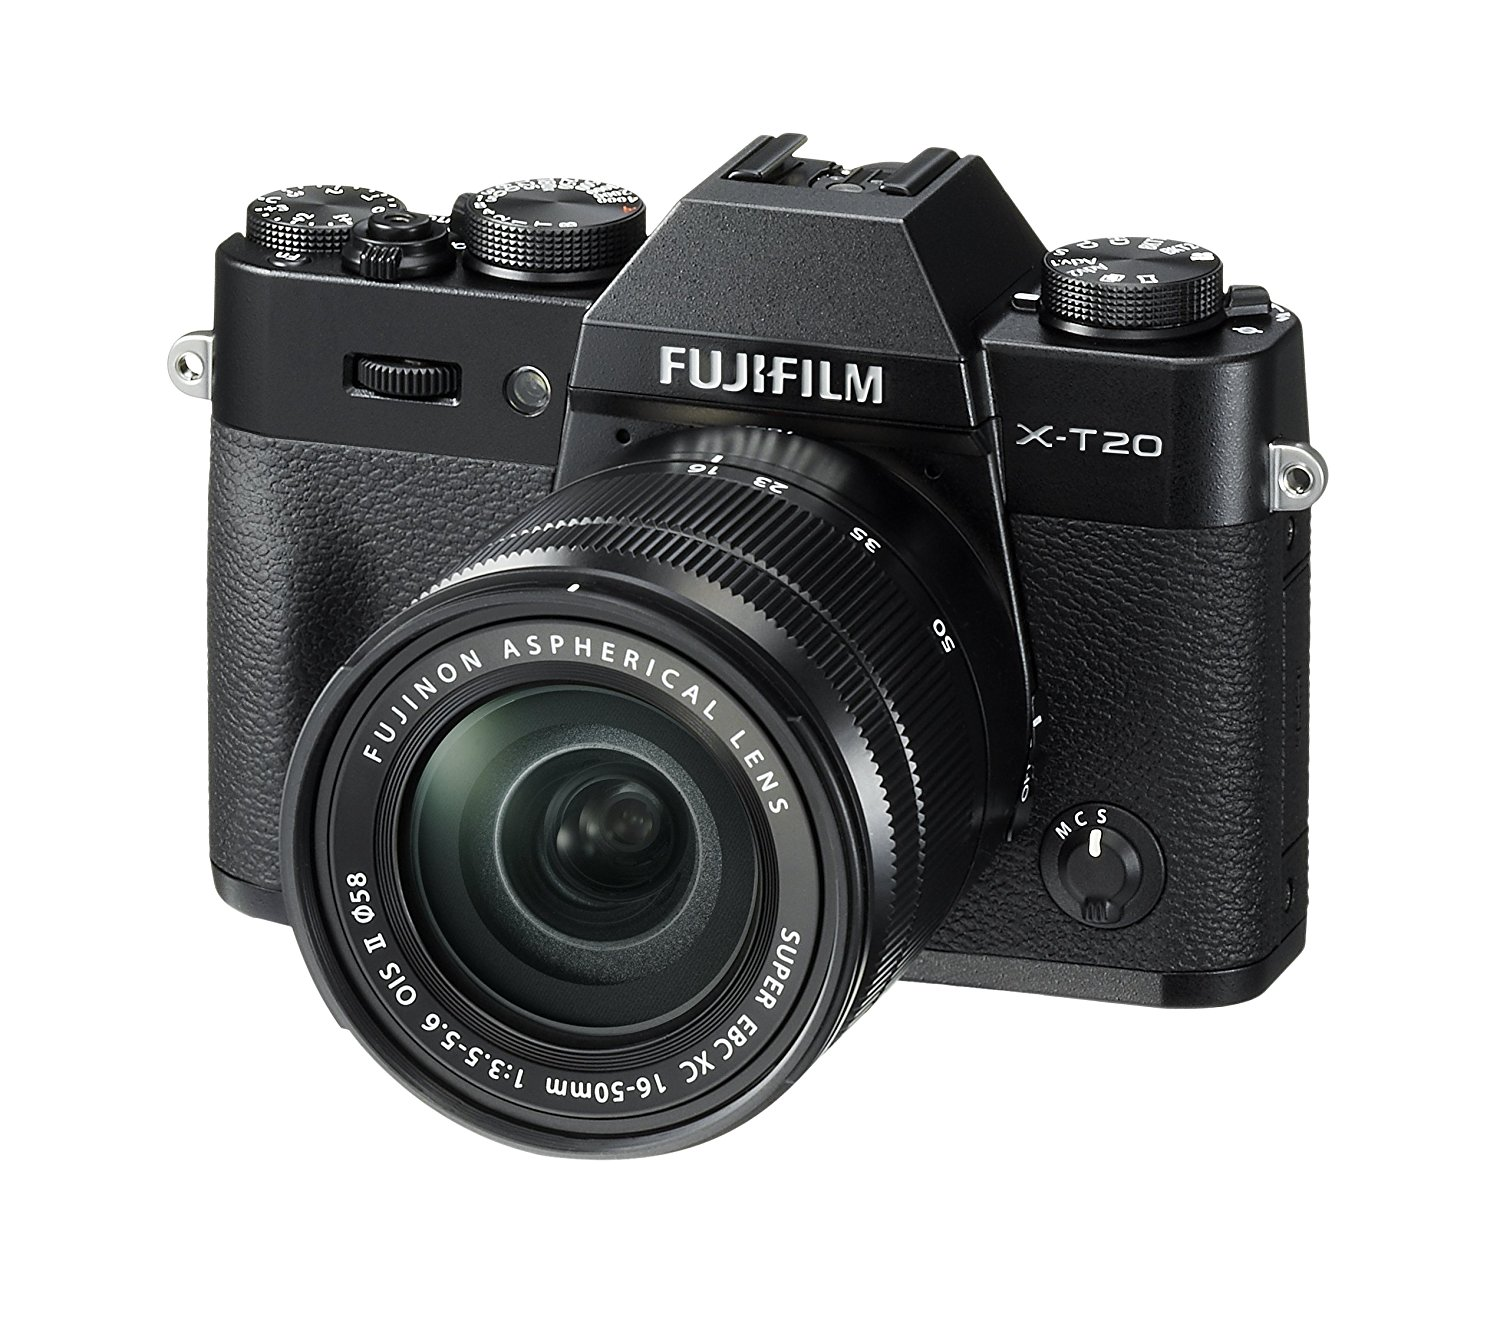 Fuji X-T20 best mirrorless camera for street photography